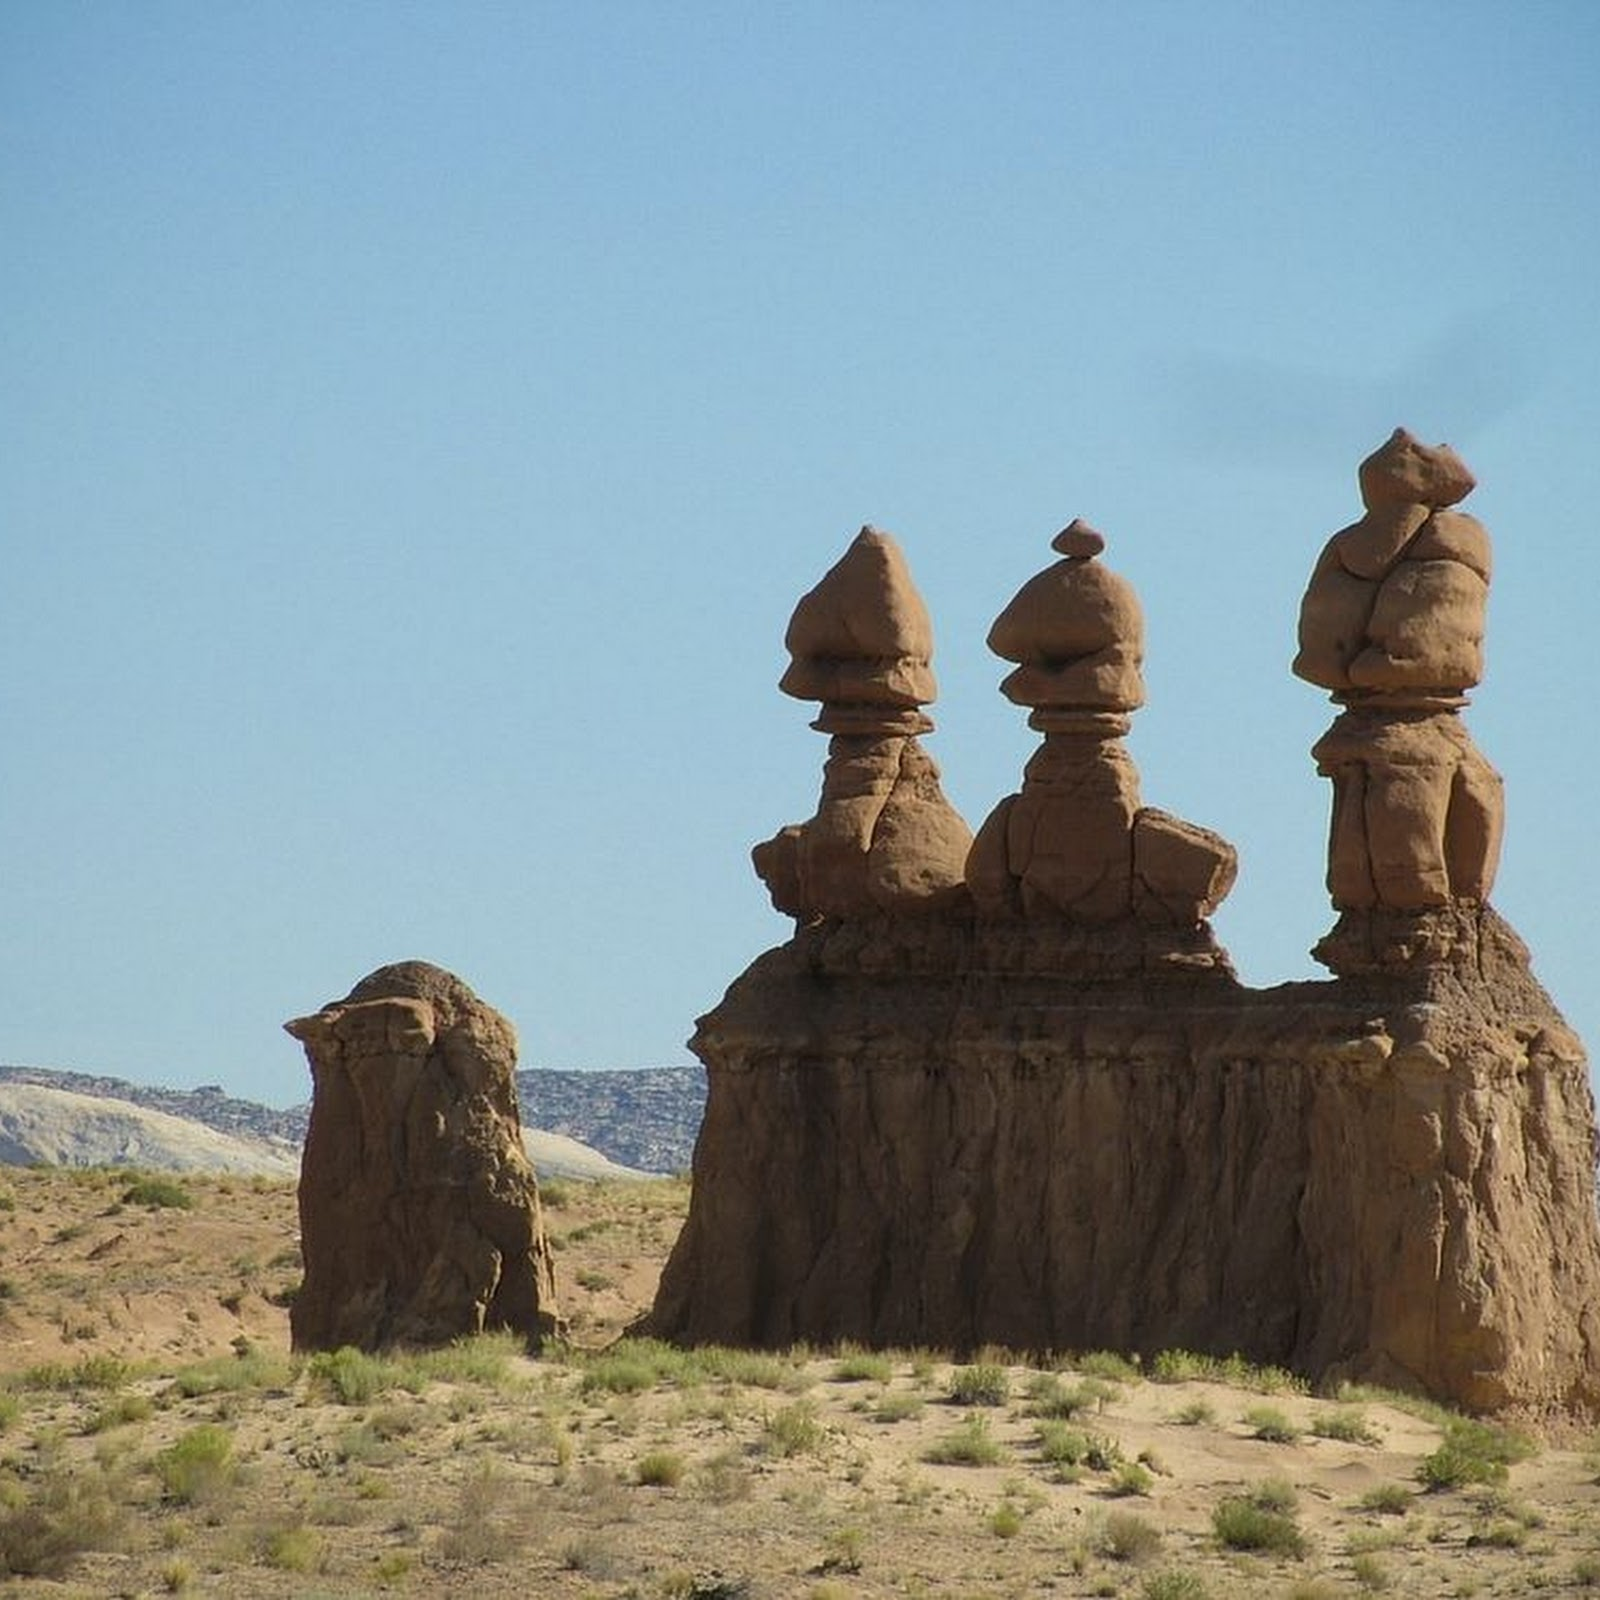 The Hoodoos of Goblin Valley State Park